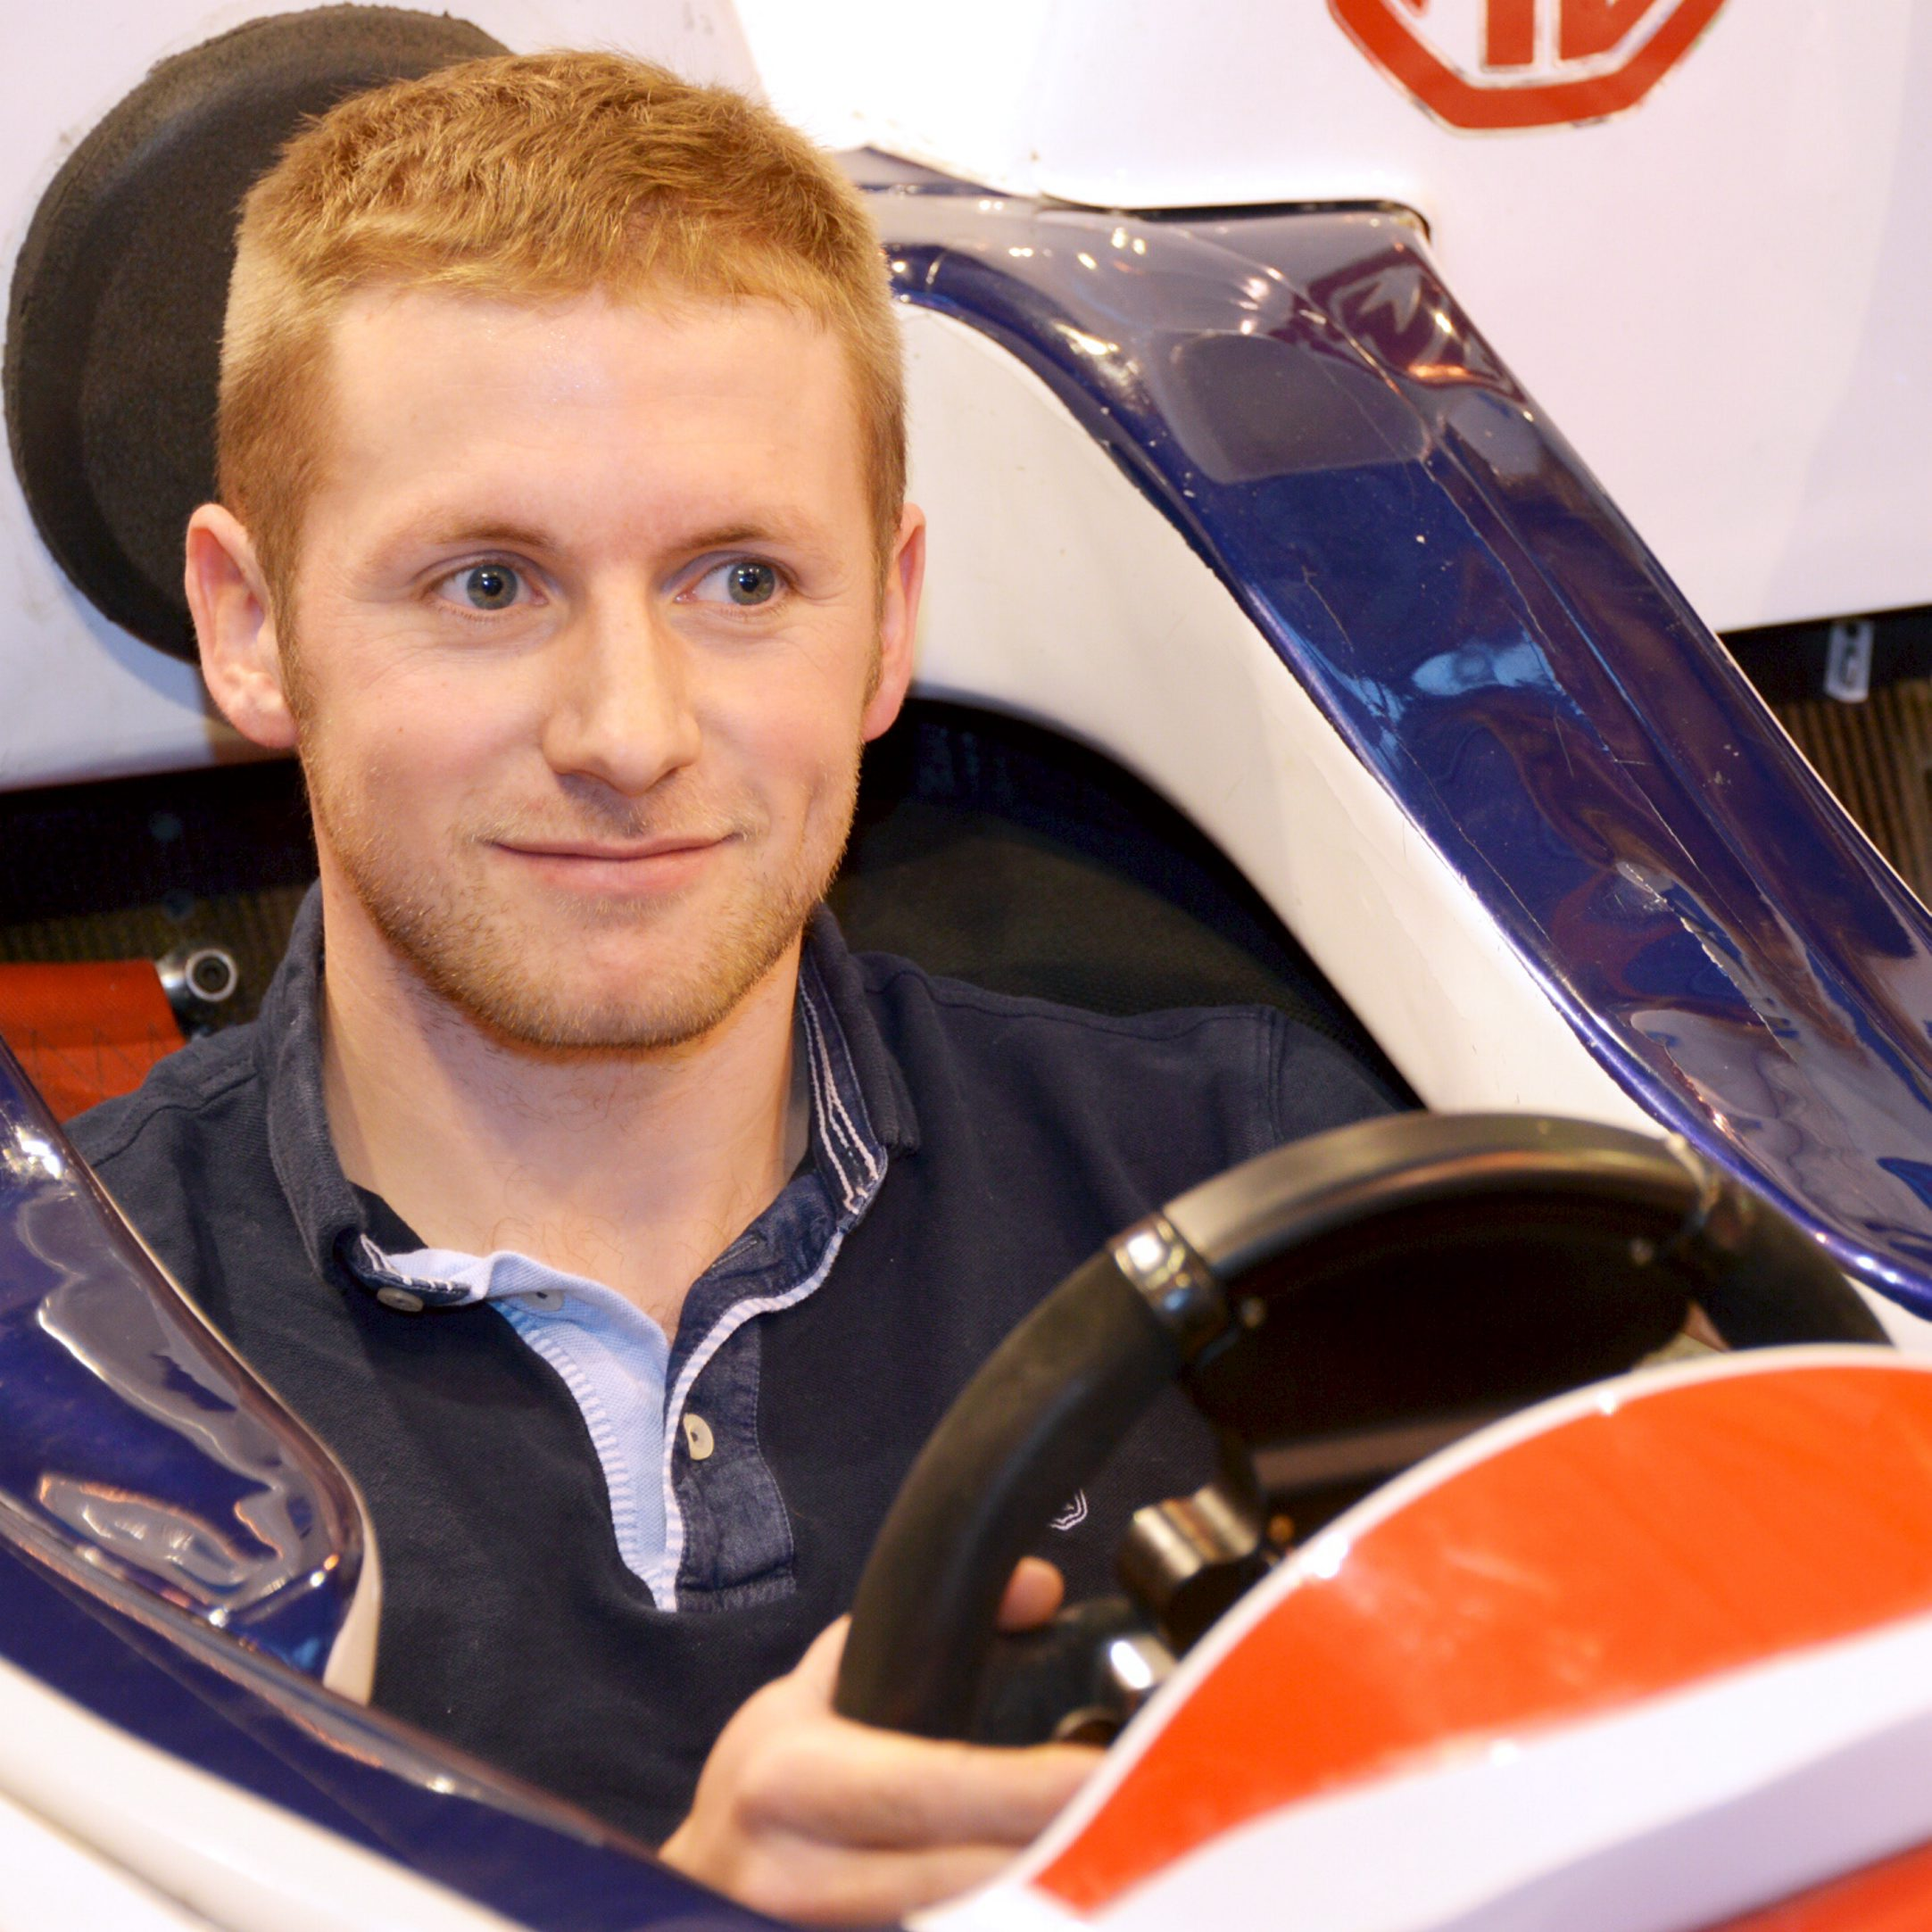 Olympic cyclist Jason Kenny competes against public on racing simulator